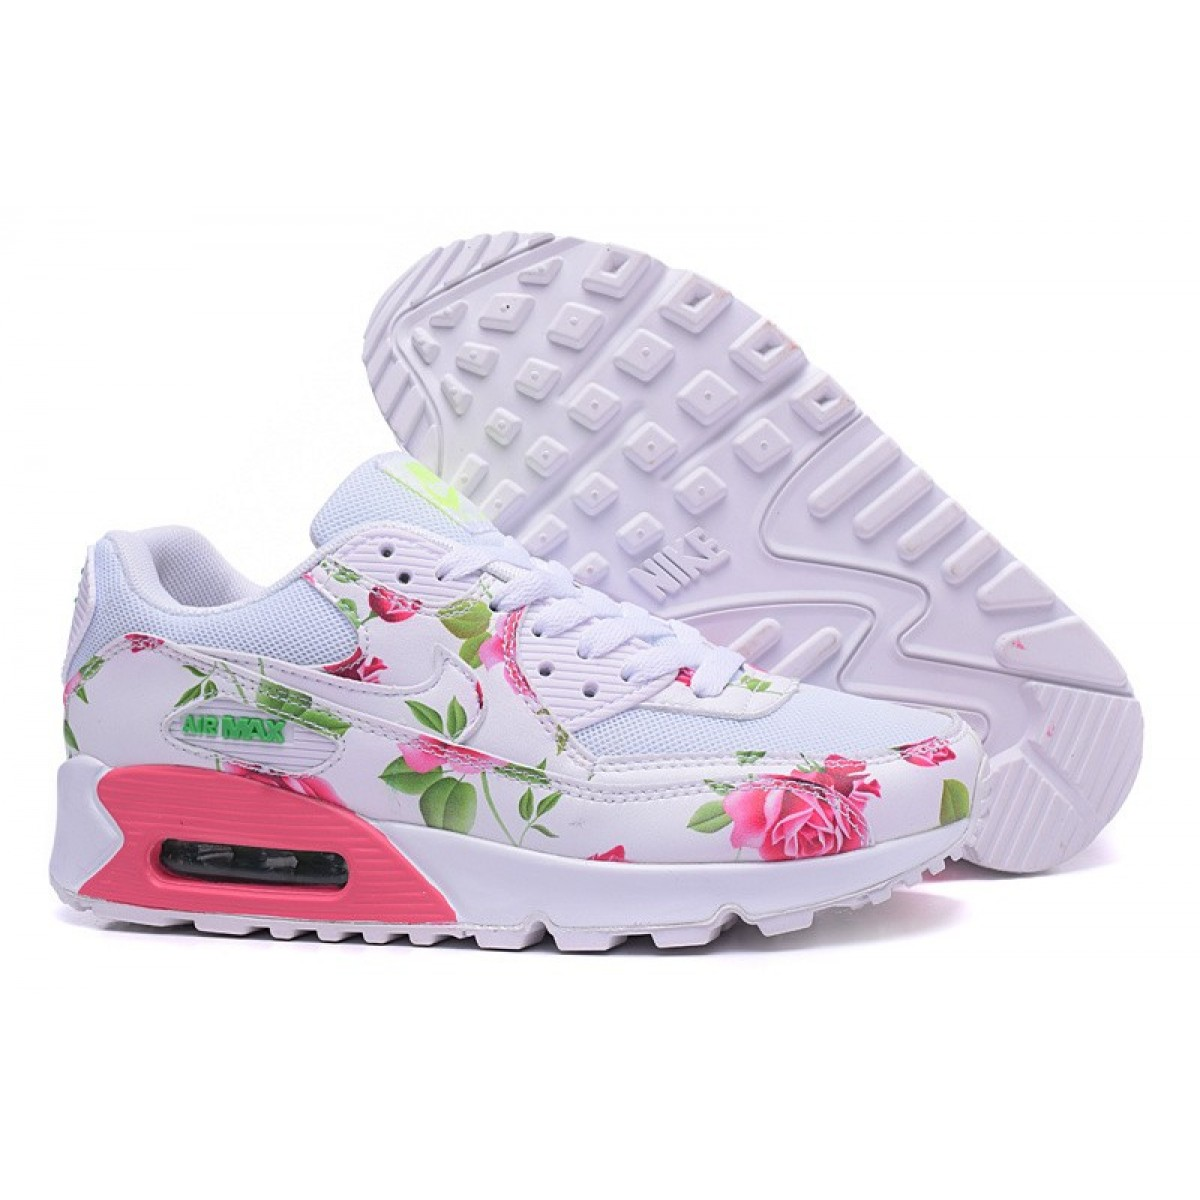 exquisite design meet special section Achat / Vente produits Nike Air Max 90 Femme Fleur,Nike Air Max 90 ...